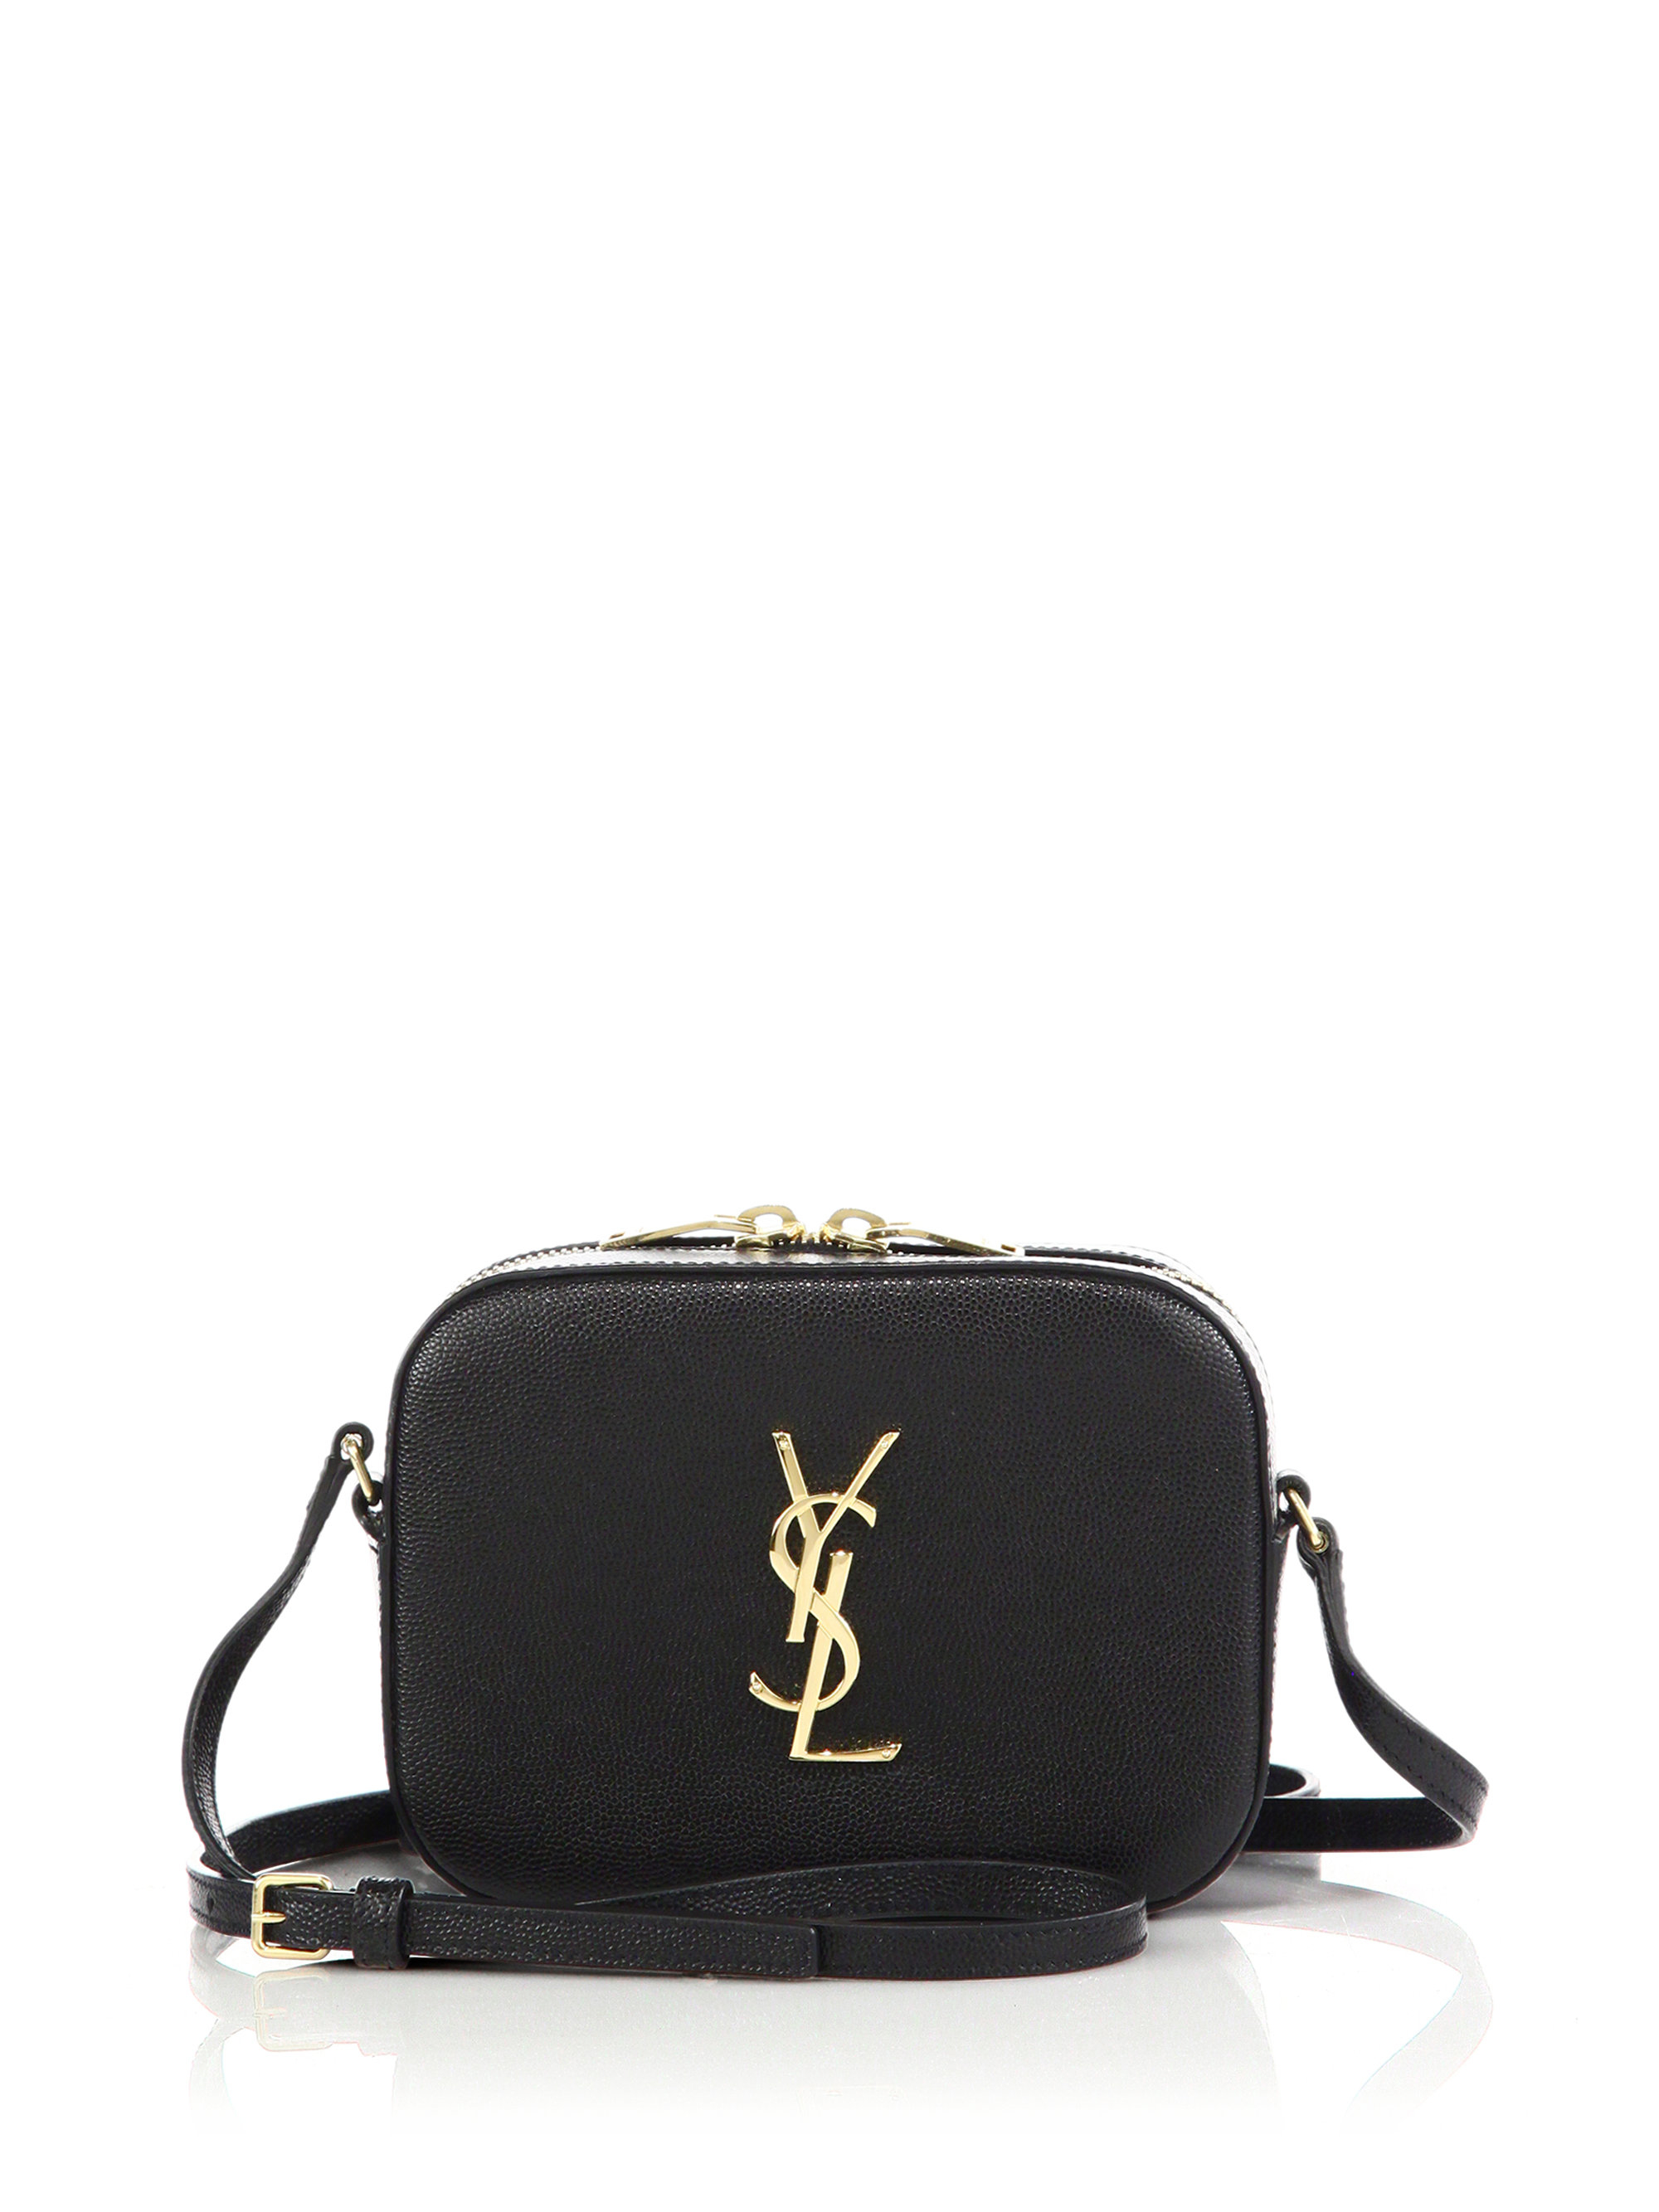 Lyst Saint Laurent Monogram Small Textured Leather